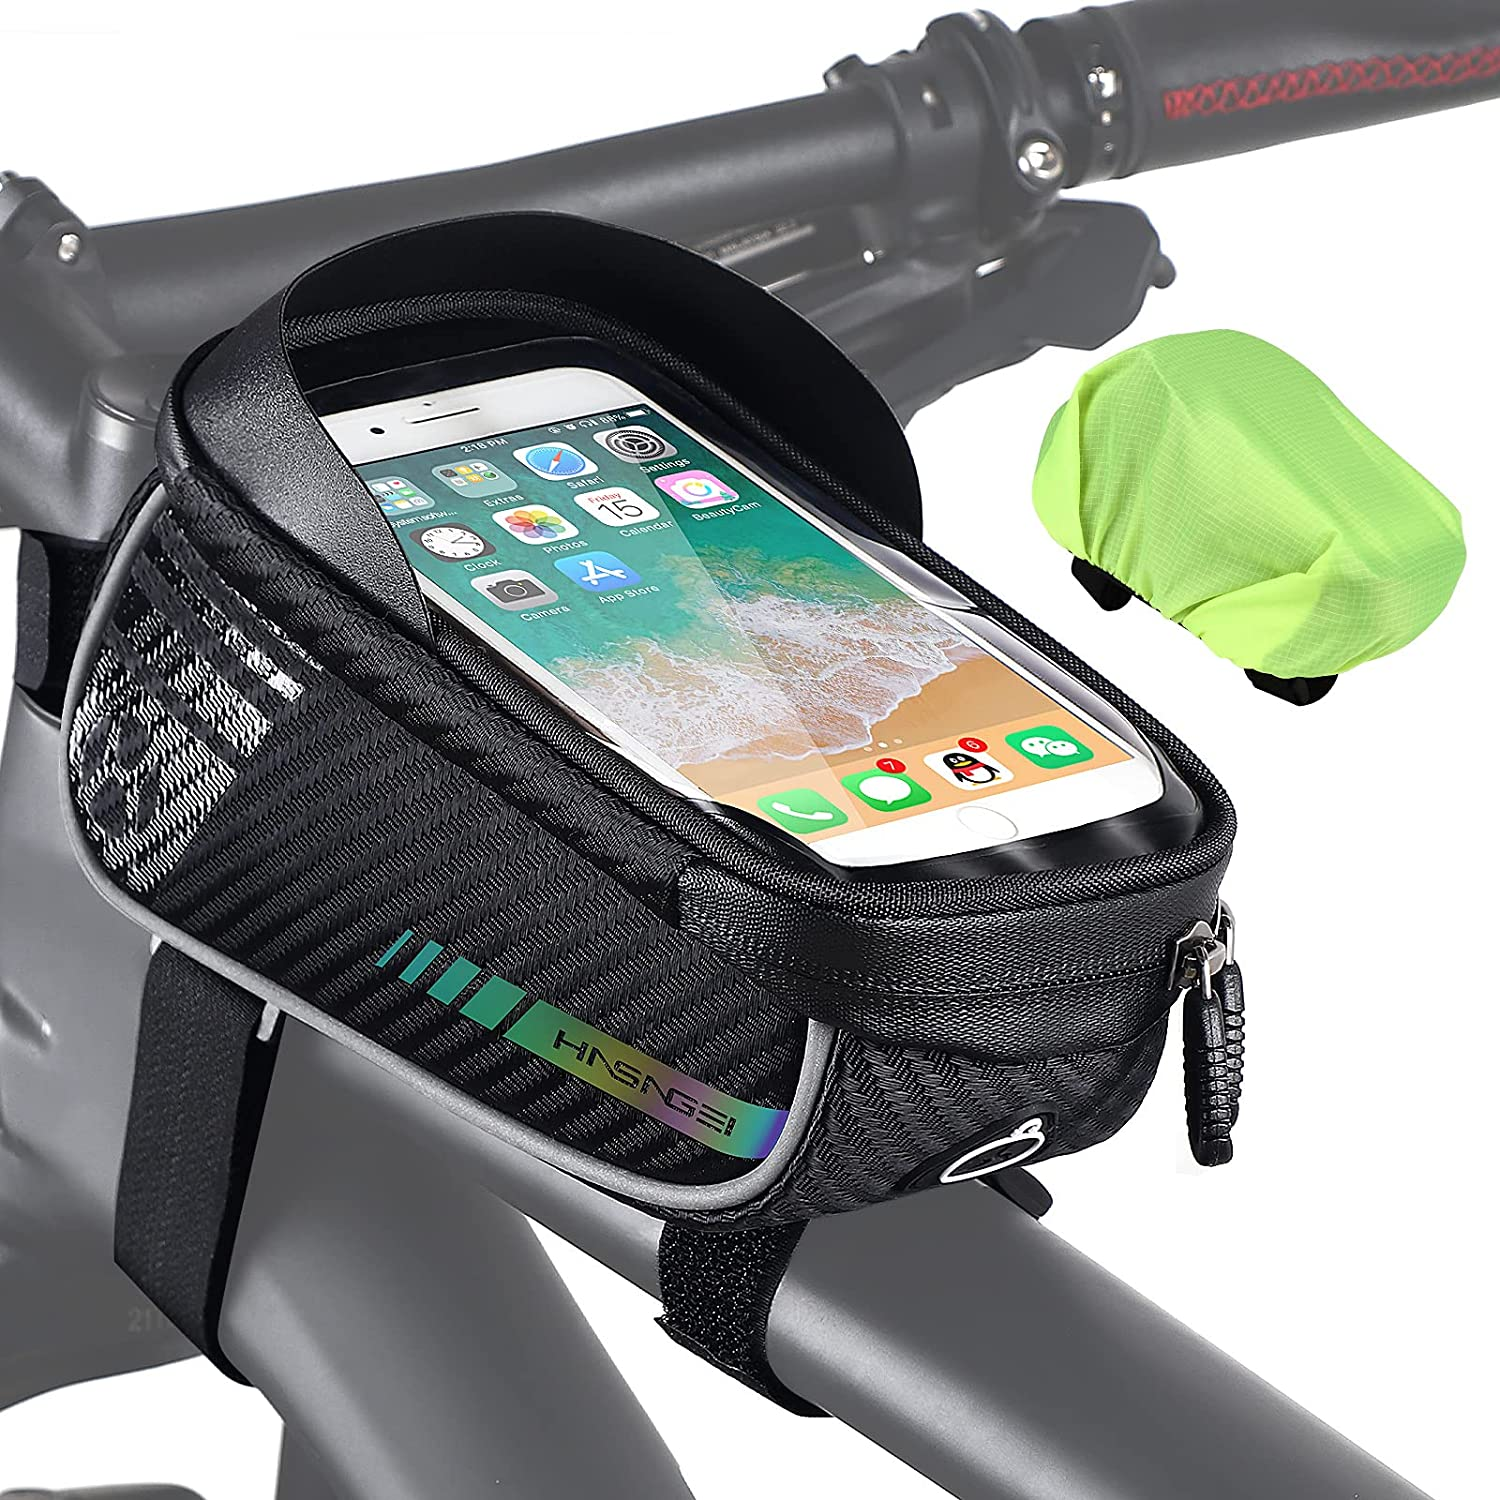 HASAGEI Bicycle Frame Bag Waterproof – Bicycle Mobile Phone Holder Ideal for Navigation, Mountain Bike Bag, Bicycle Bag Frame, Bicycle Accessories, Bicycle Mobile Phone Bag for Smartphone Under (6.5 – 7 Inches)